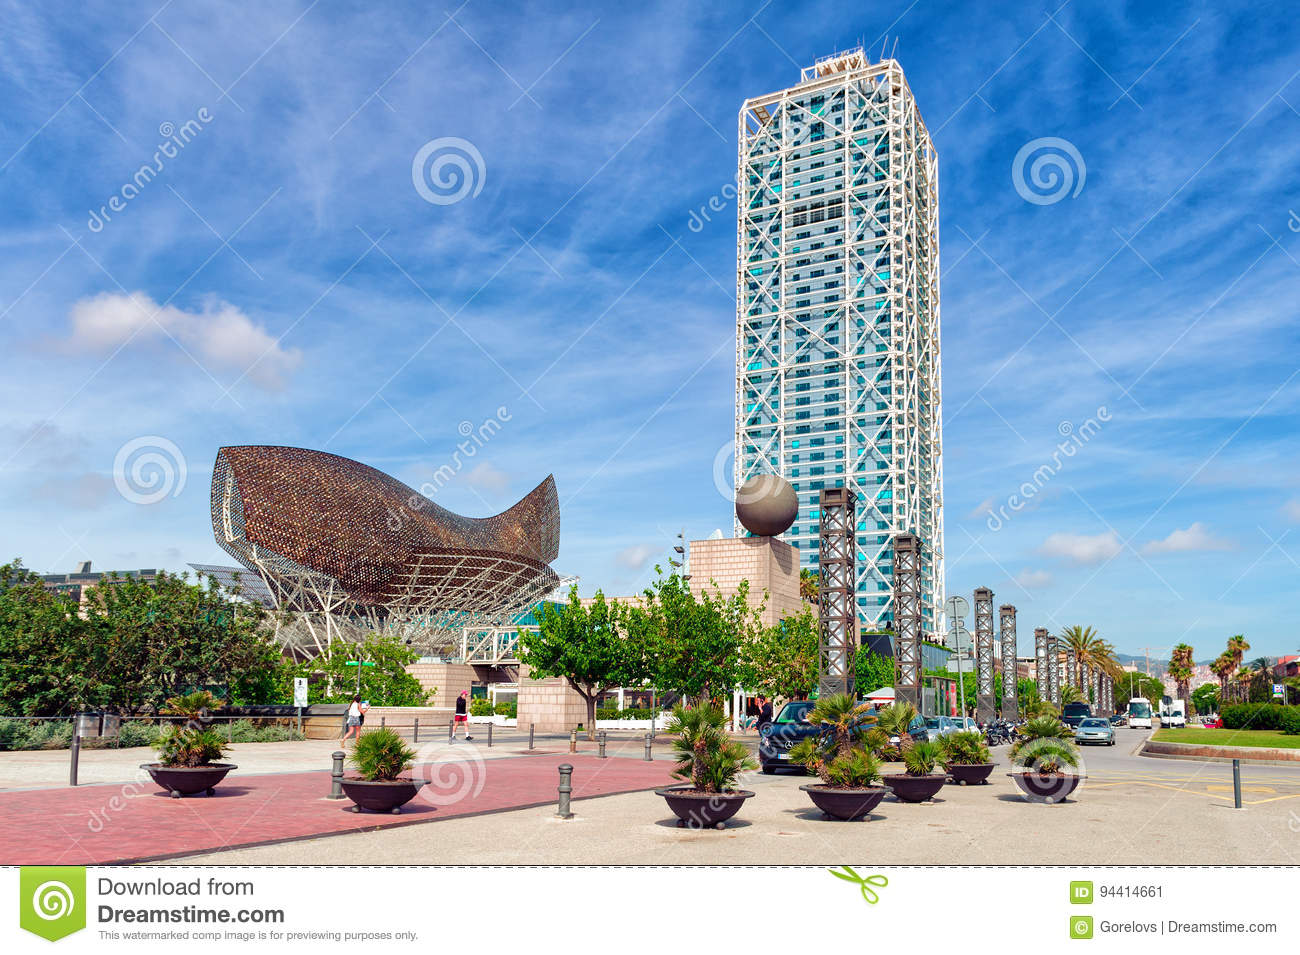 Barceloneta beach promenade with modern architecture in Barcelona, Spain